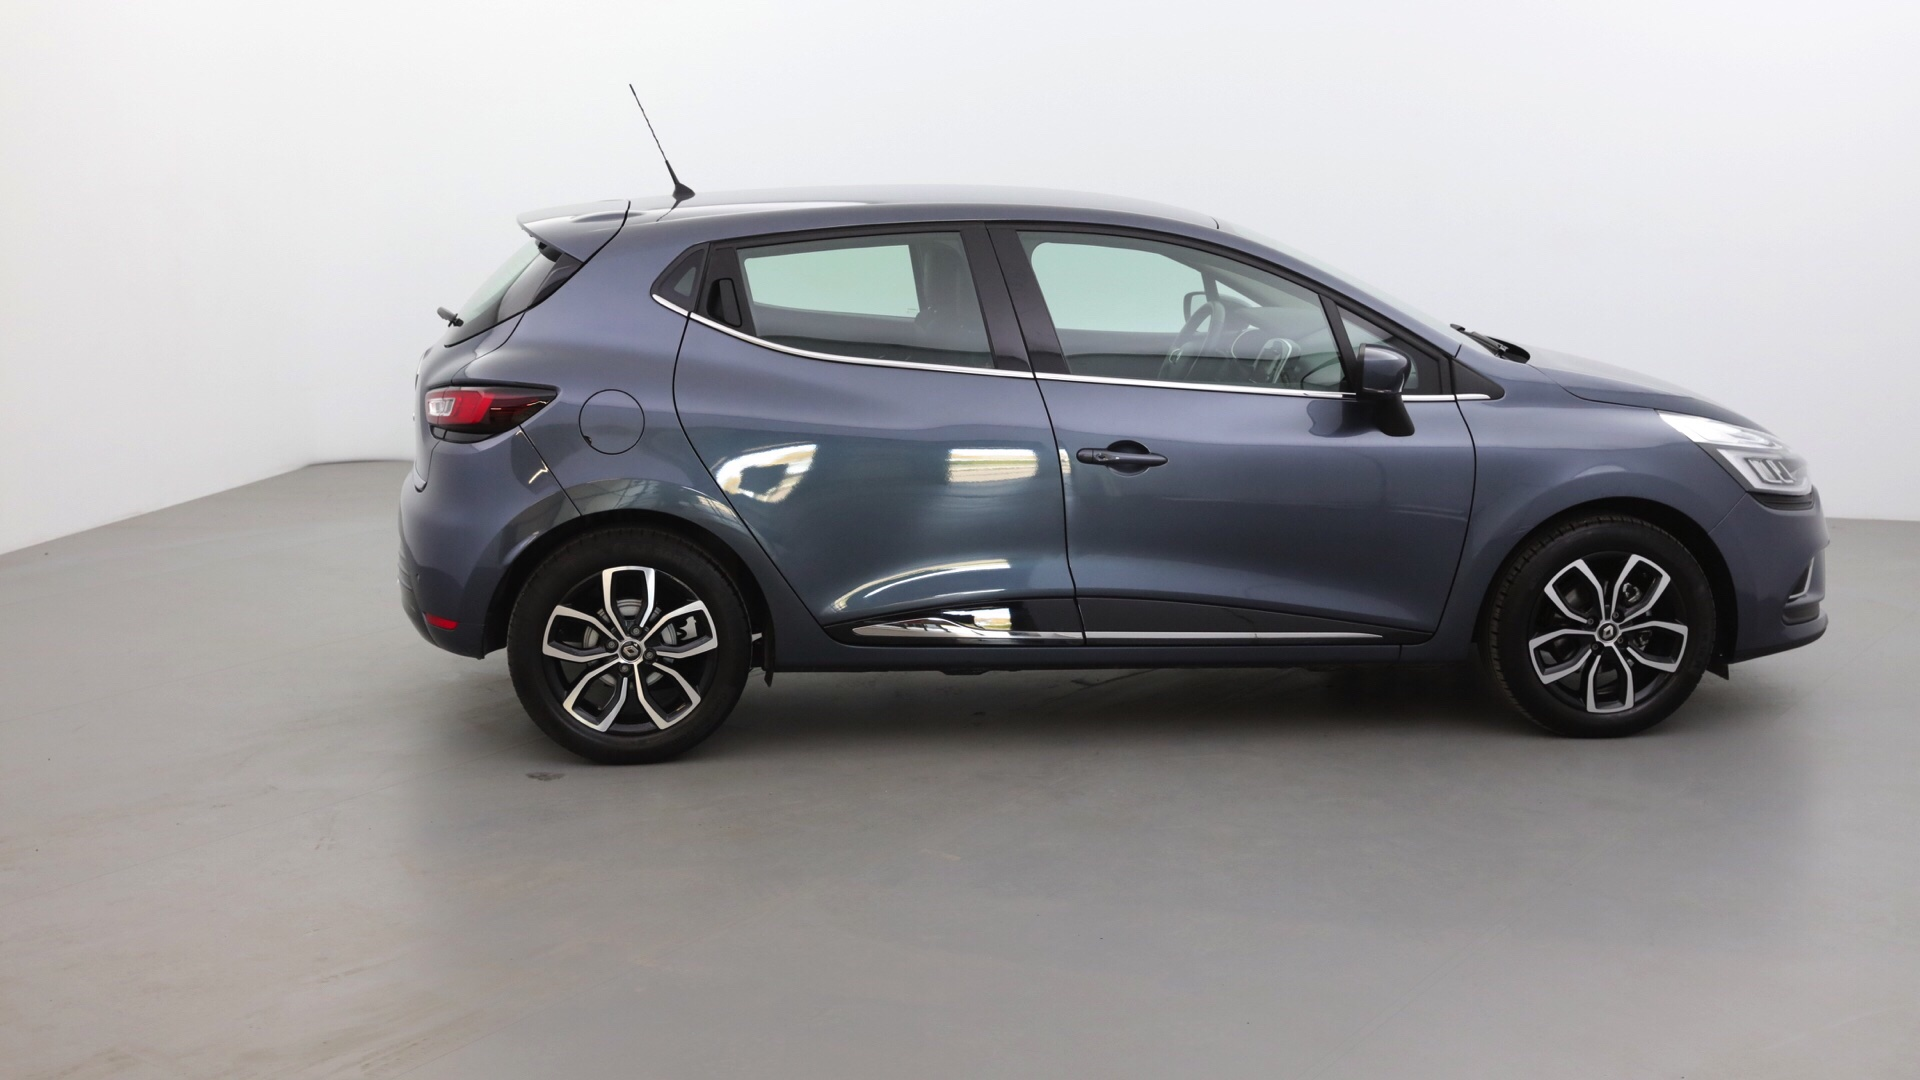 RENAULT CLIO 0.9 TCE 90CH ENERGY INTENS 5P - Miniature 4